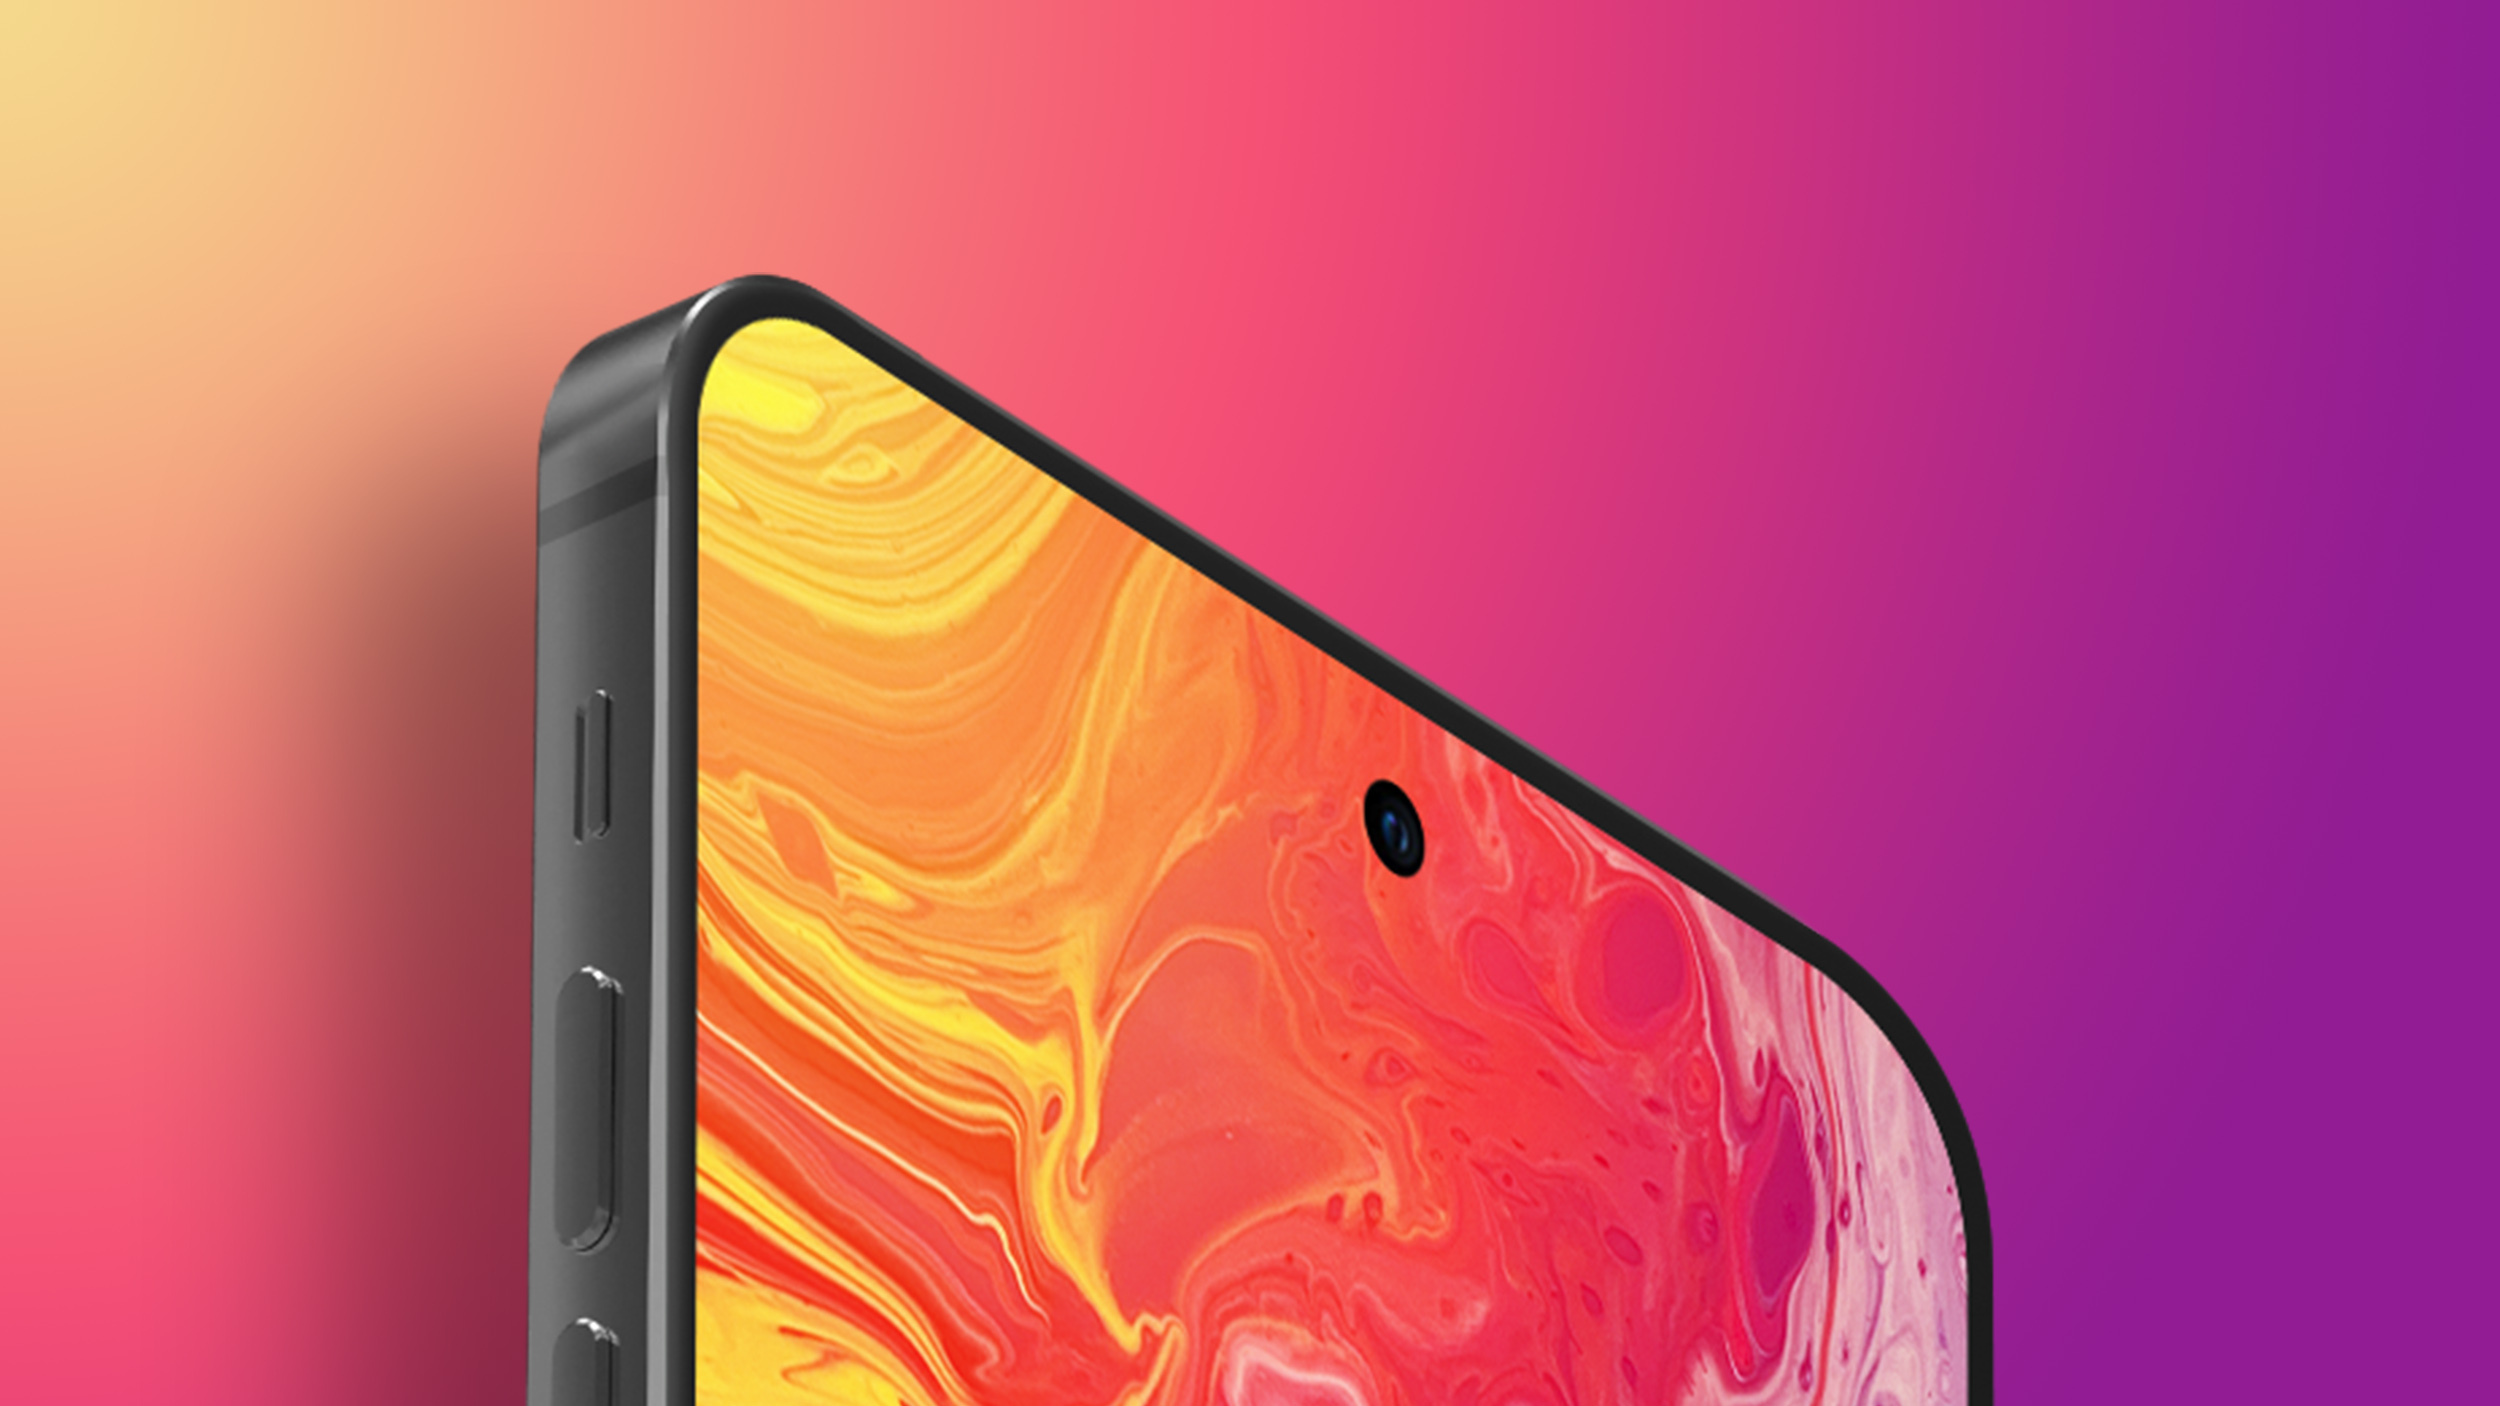 Display Analyst Concurs That iPhone 14 Pro Models Likely to Feature Under-Display Face ID